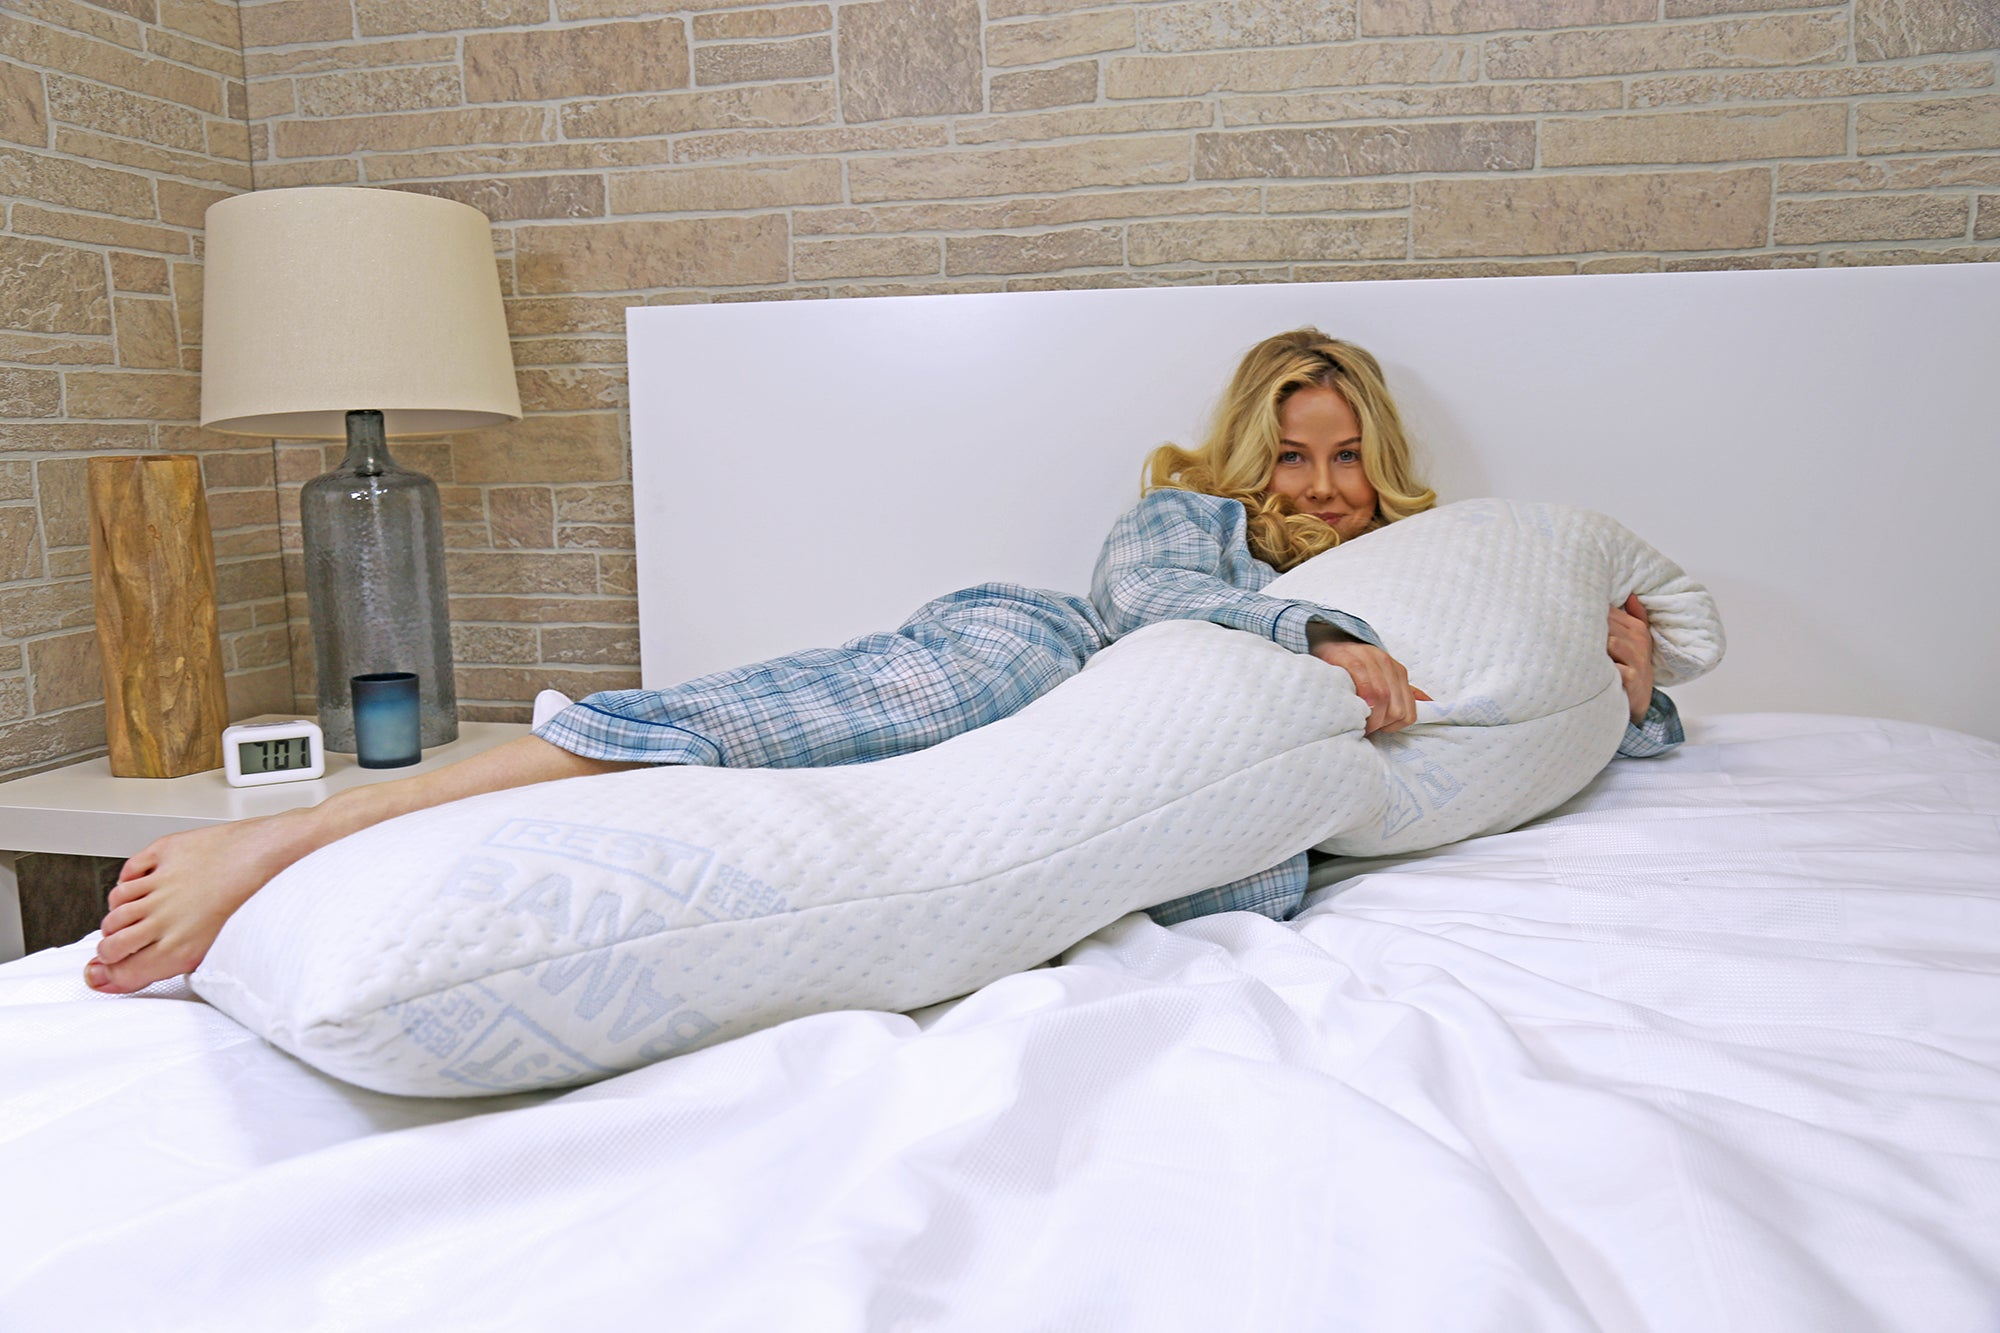 "BRADS DEAL 50% OFF -REST Luxury Bamboo Pillow Covers (2 Pack) ""DISCOUNT APPLIED IN SHOPPING CART"""